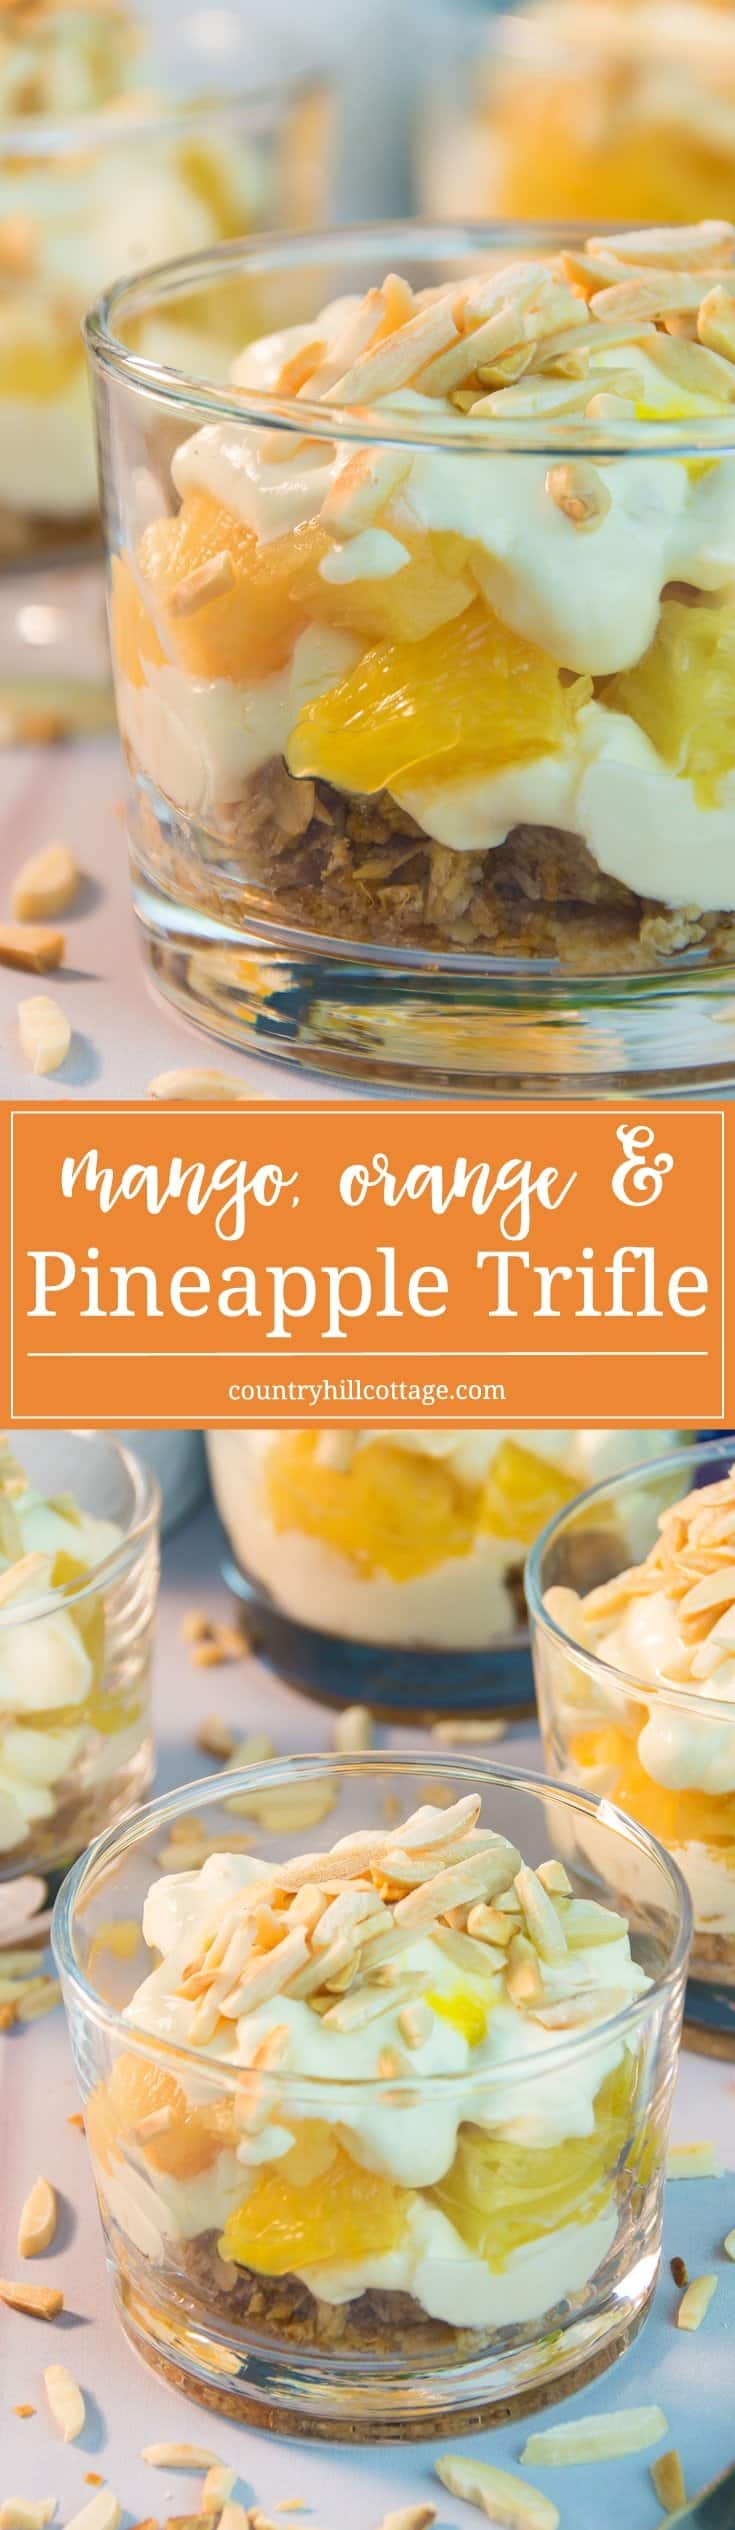 Our mango orange pineapple trifle is made of delicious layers of crushed granola, roasted almonds, fresh pineapple, mango sauce and creamy clotted cream. It tastes both luxurious and creamy, as well as fruity and airy! #dessert #recipe #trifle | countryhillcottage.com